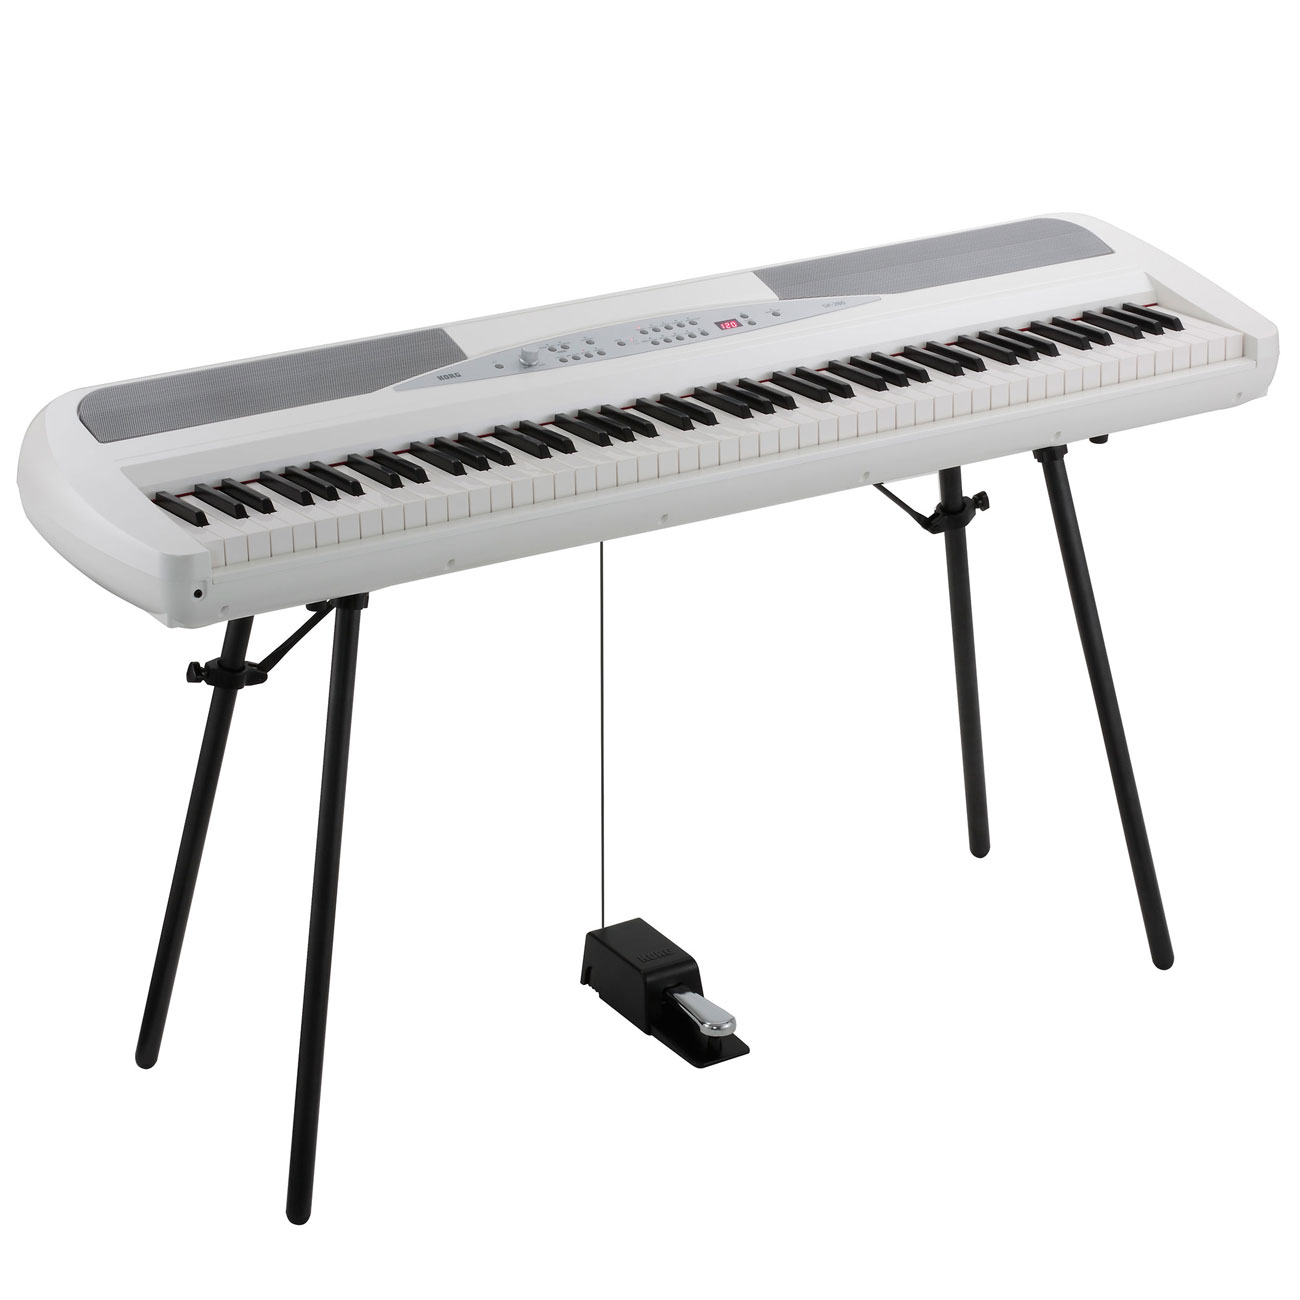 Korg SP-280 WH - Piano digital escenario ofertas